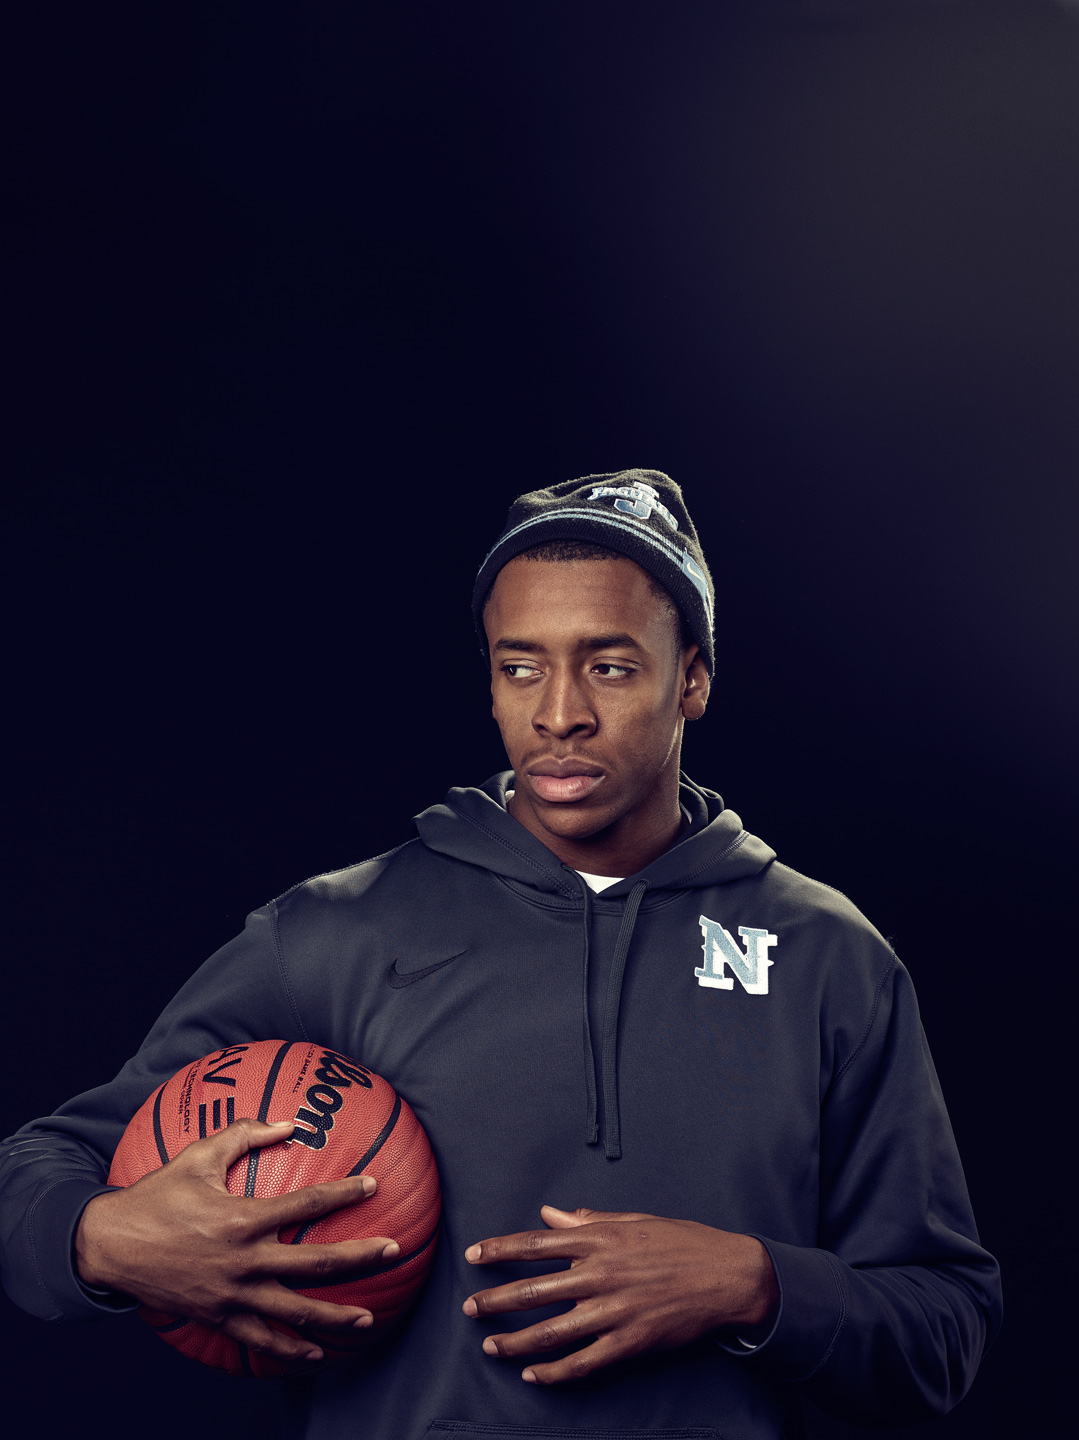 BBall-player-holding-ball-_-Michael-J-Moore-Photography